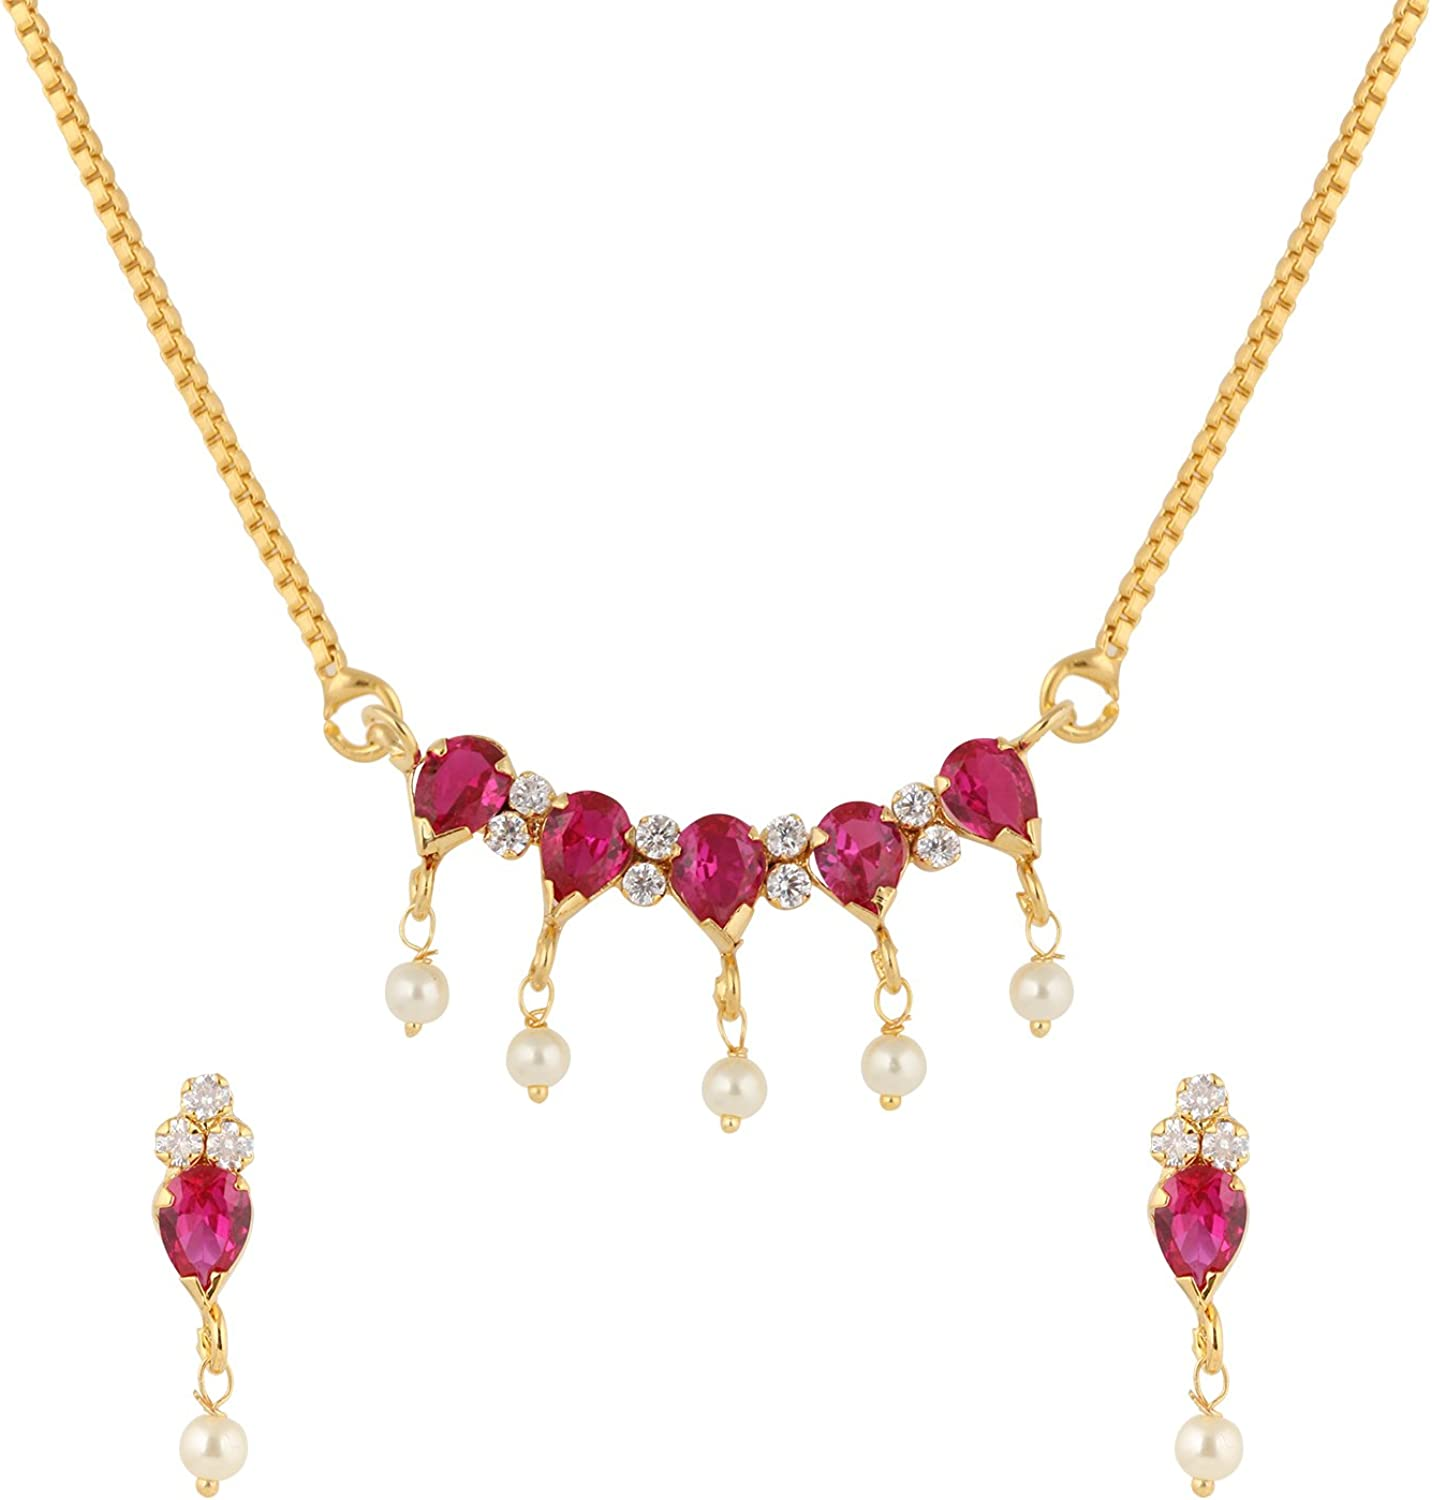 Efulgenz Indian Pink Traditional Pendant Necklace with Chain and Earrings Jewelry for Women